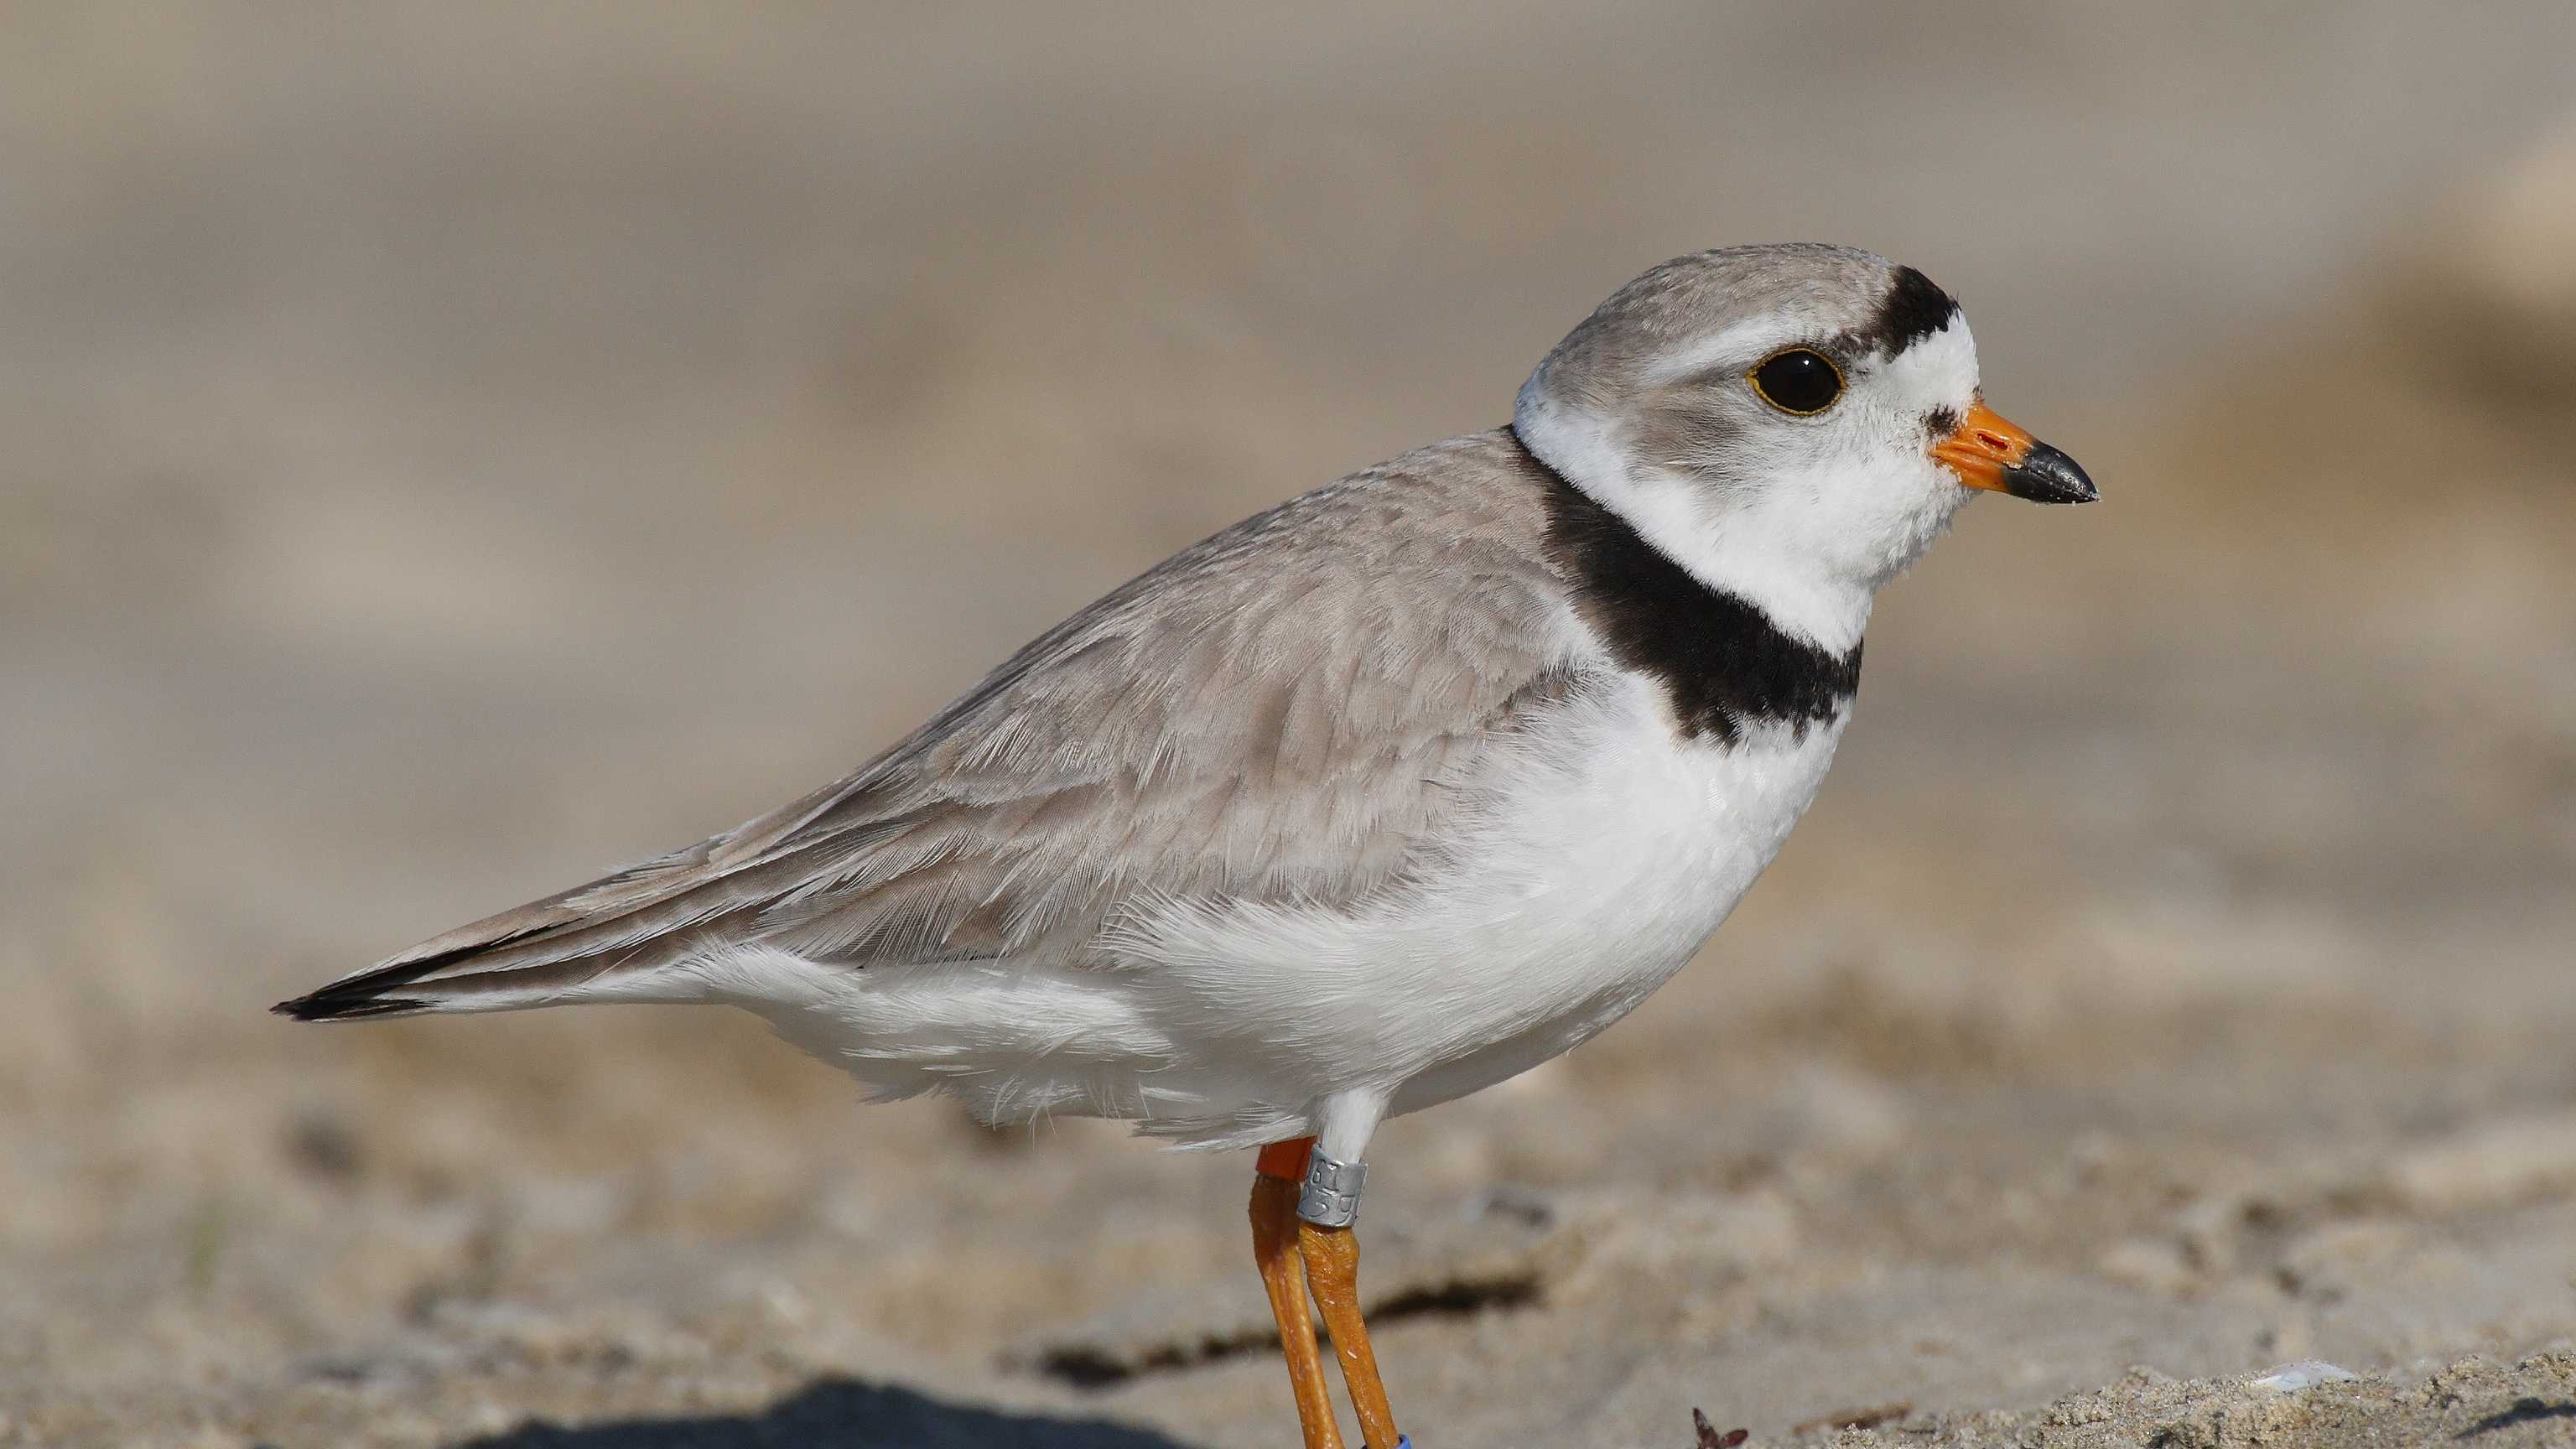 Piping plover, (Charadrius melodus)